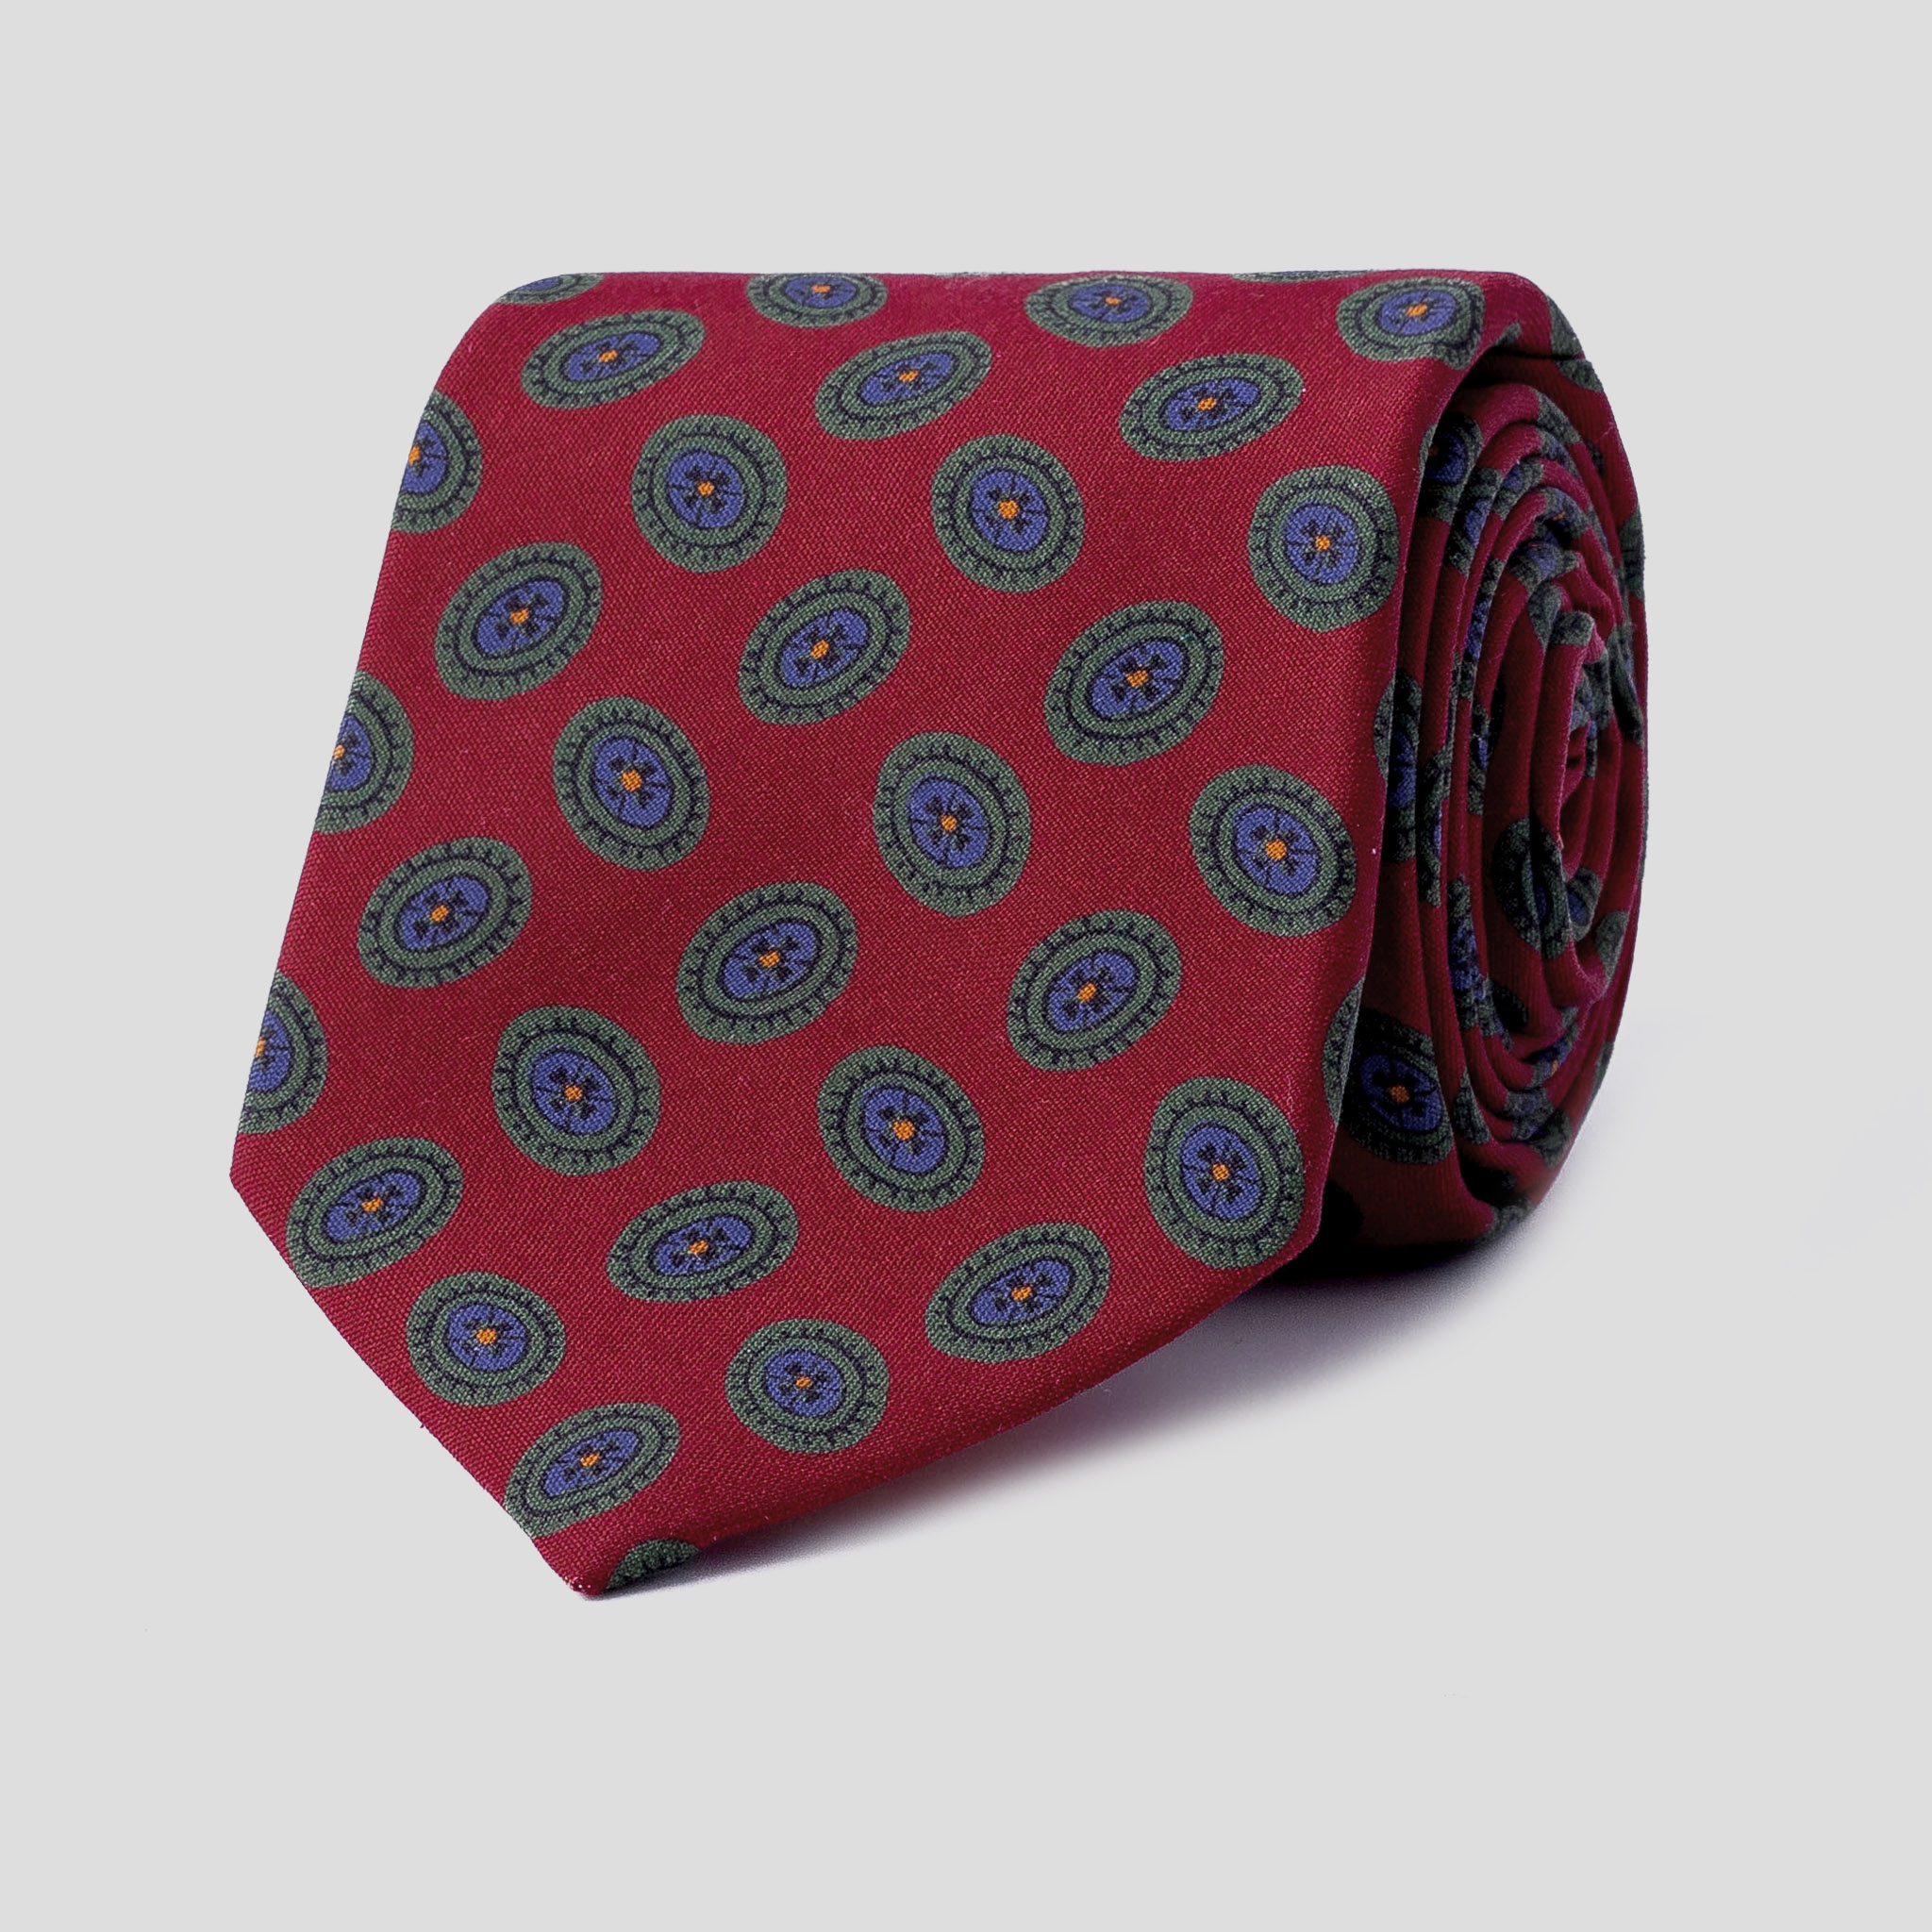 PRINTED SILK-0239-Tie-Initials-Corbata-Iniciales-The-Seelk-1